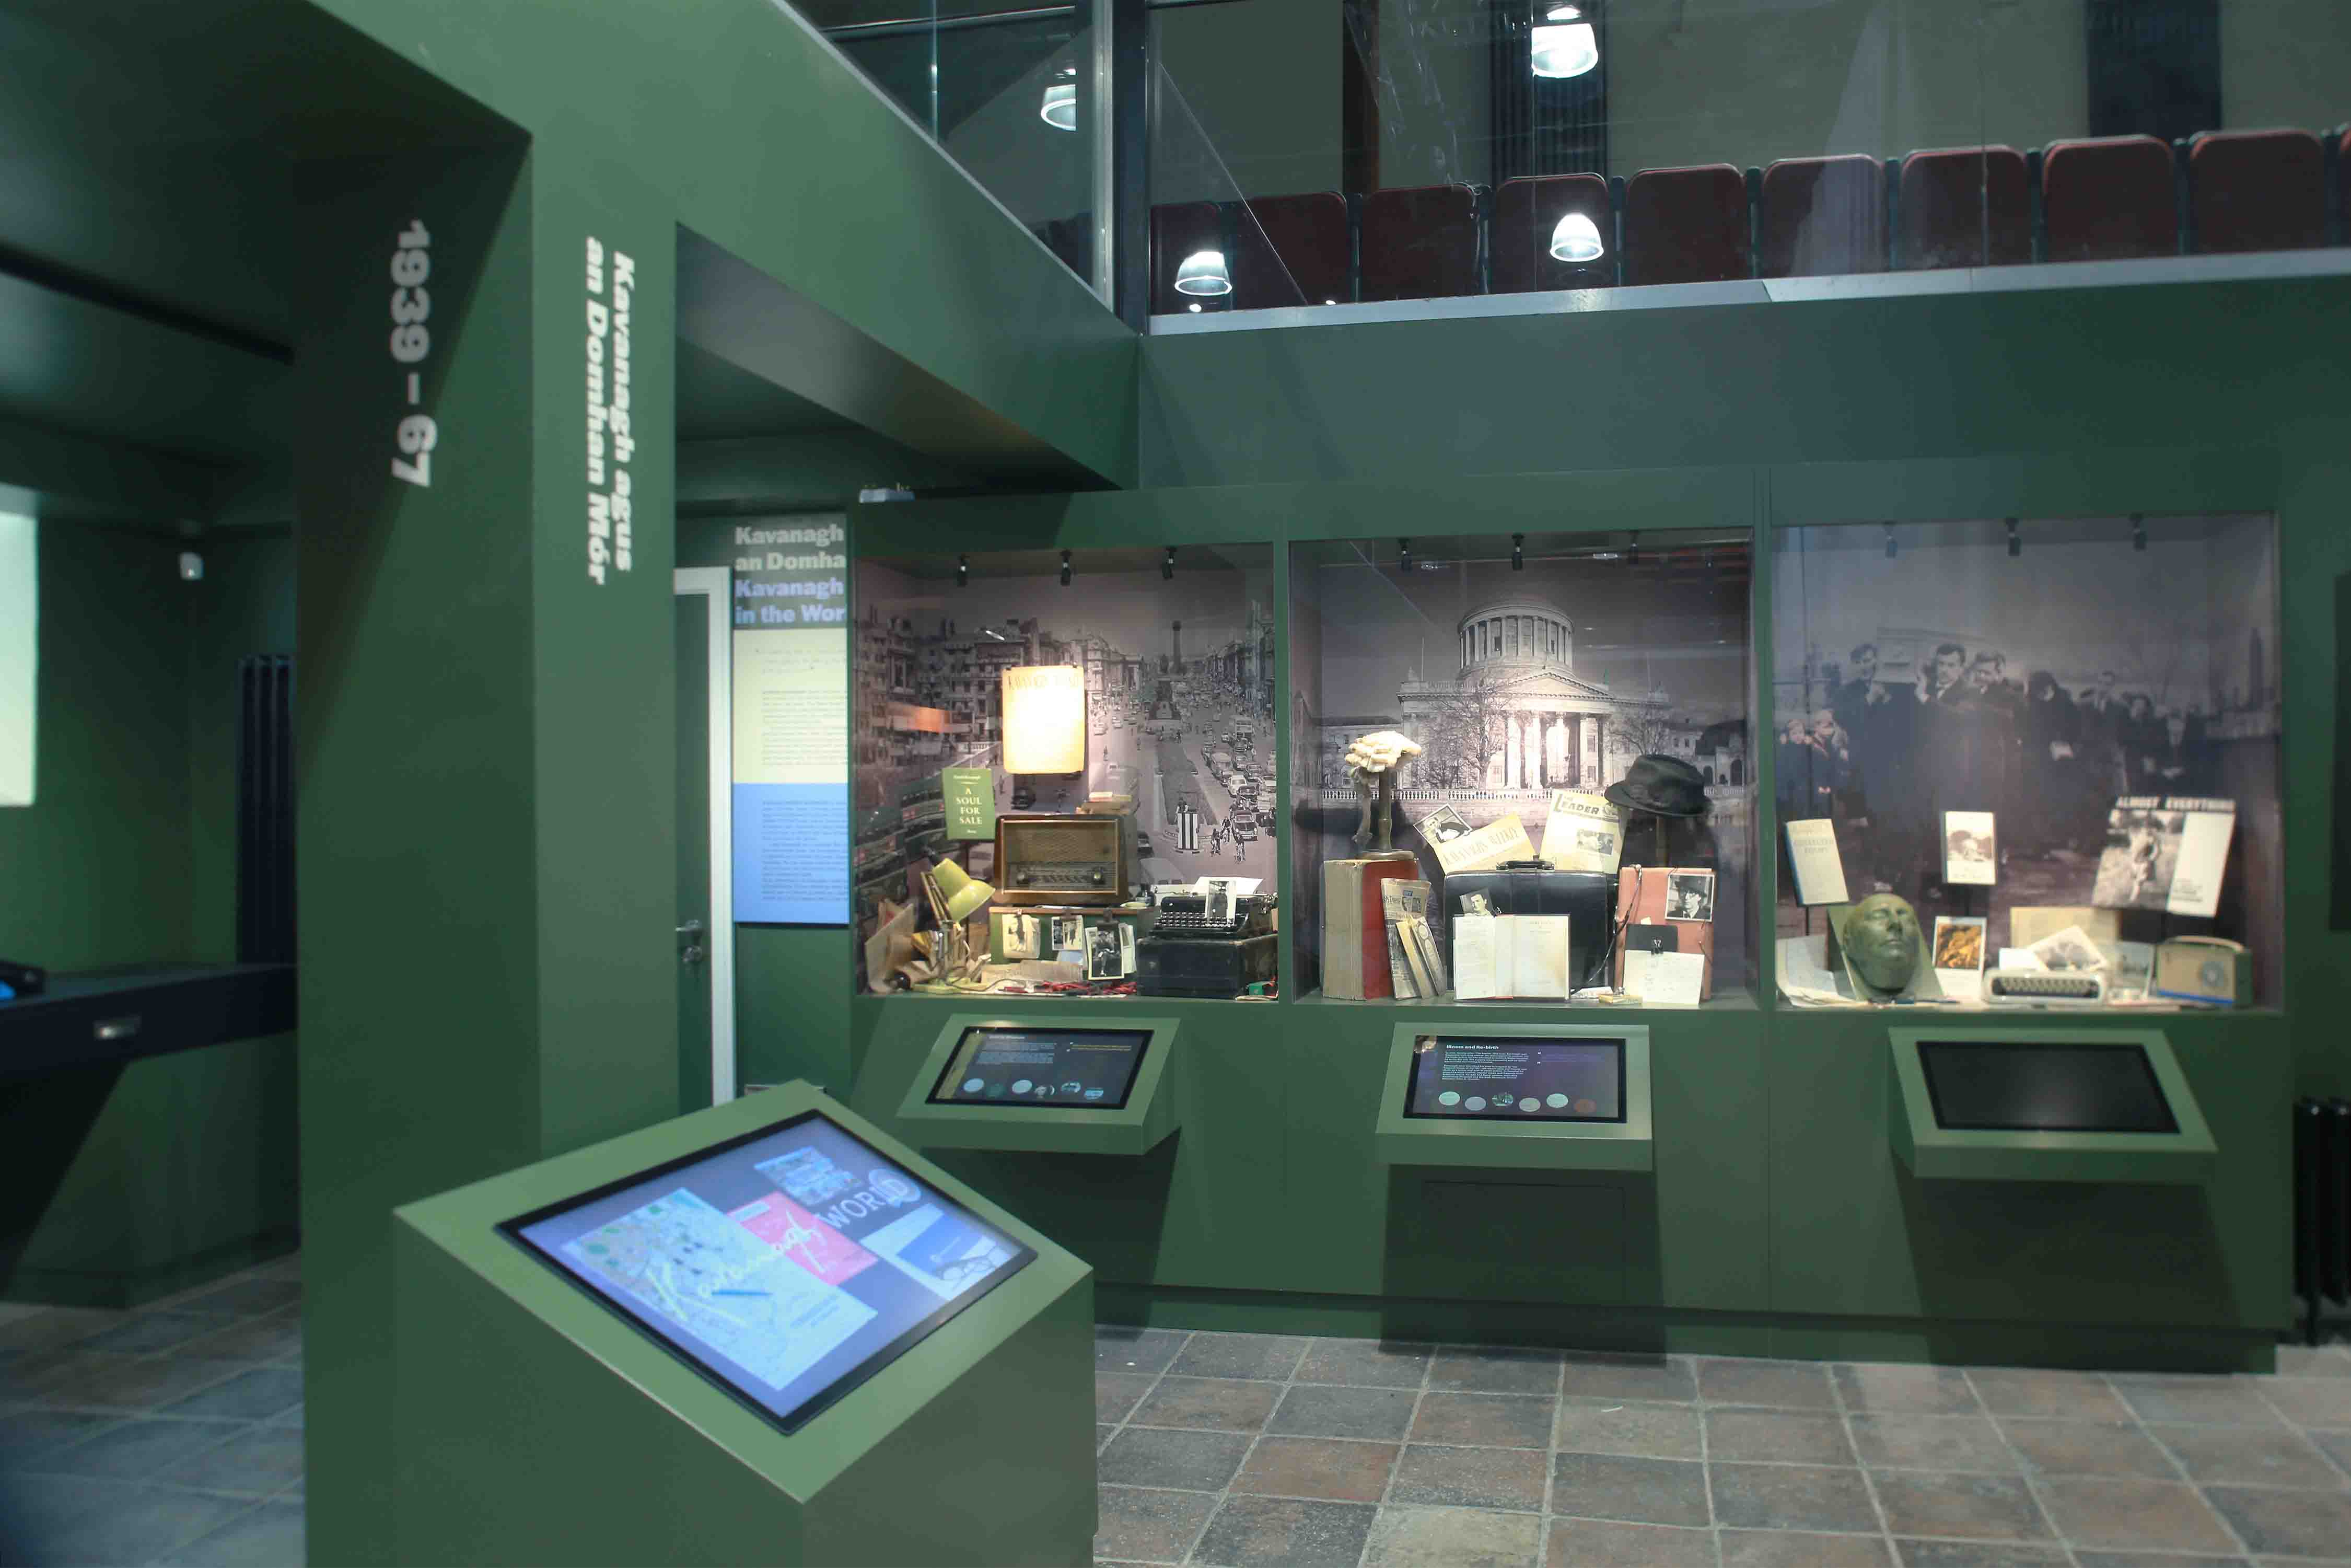 Patrick Kavanagh Exhibition Centre (6)